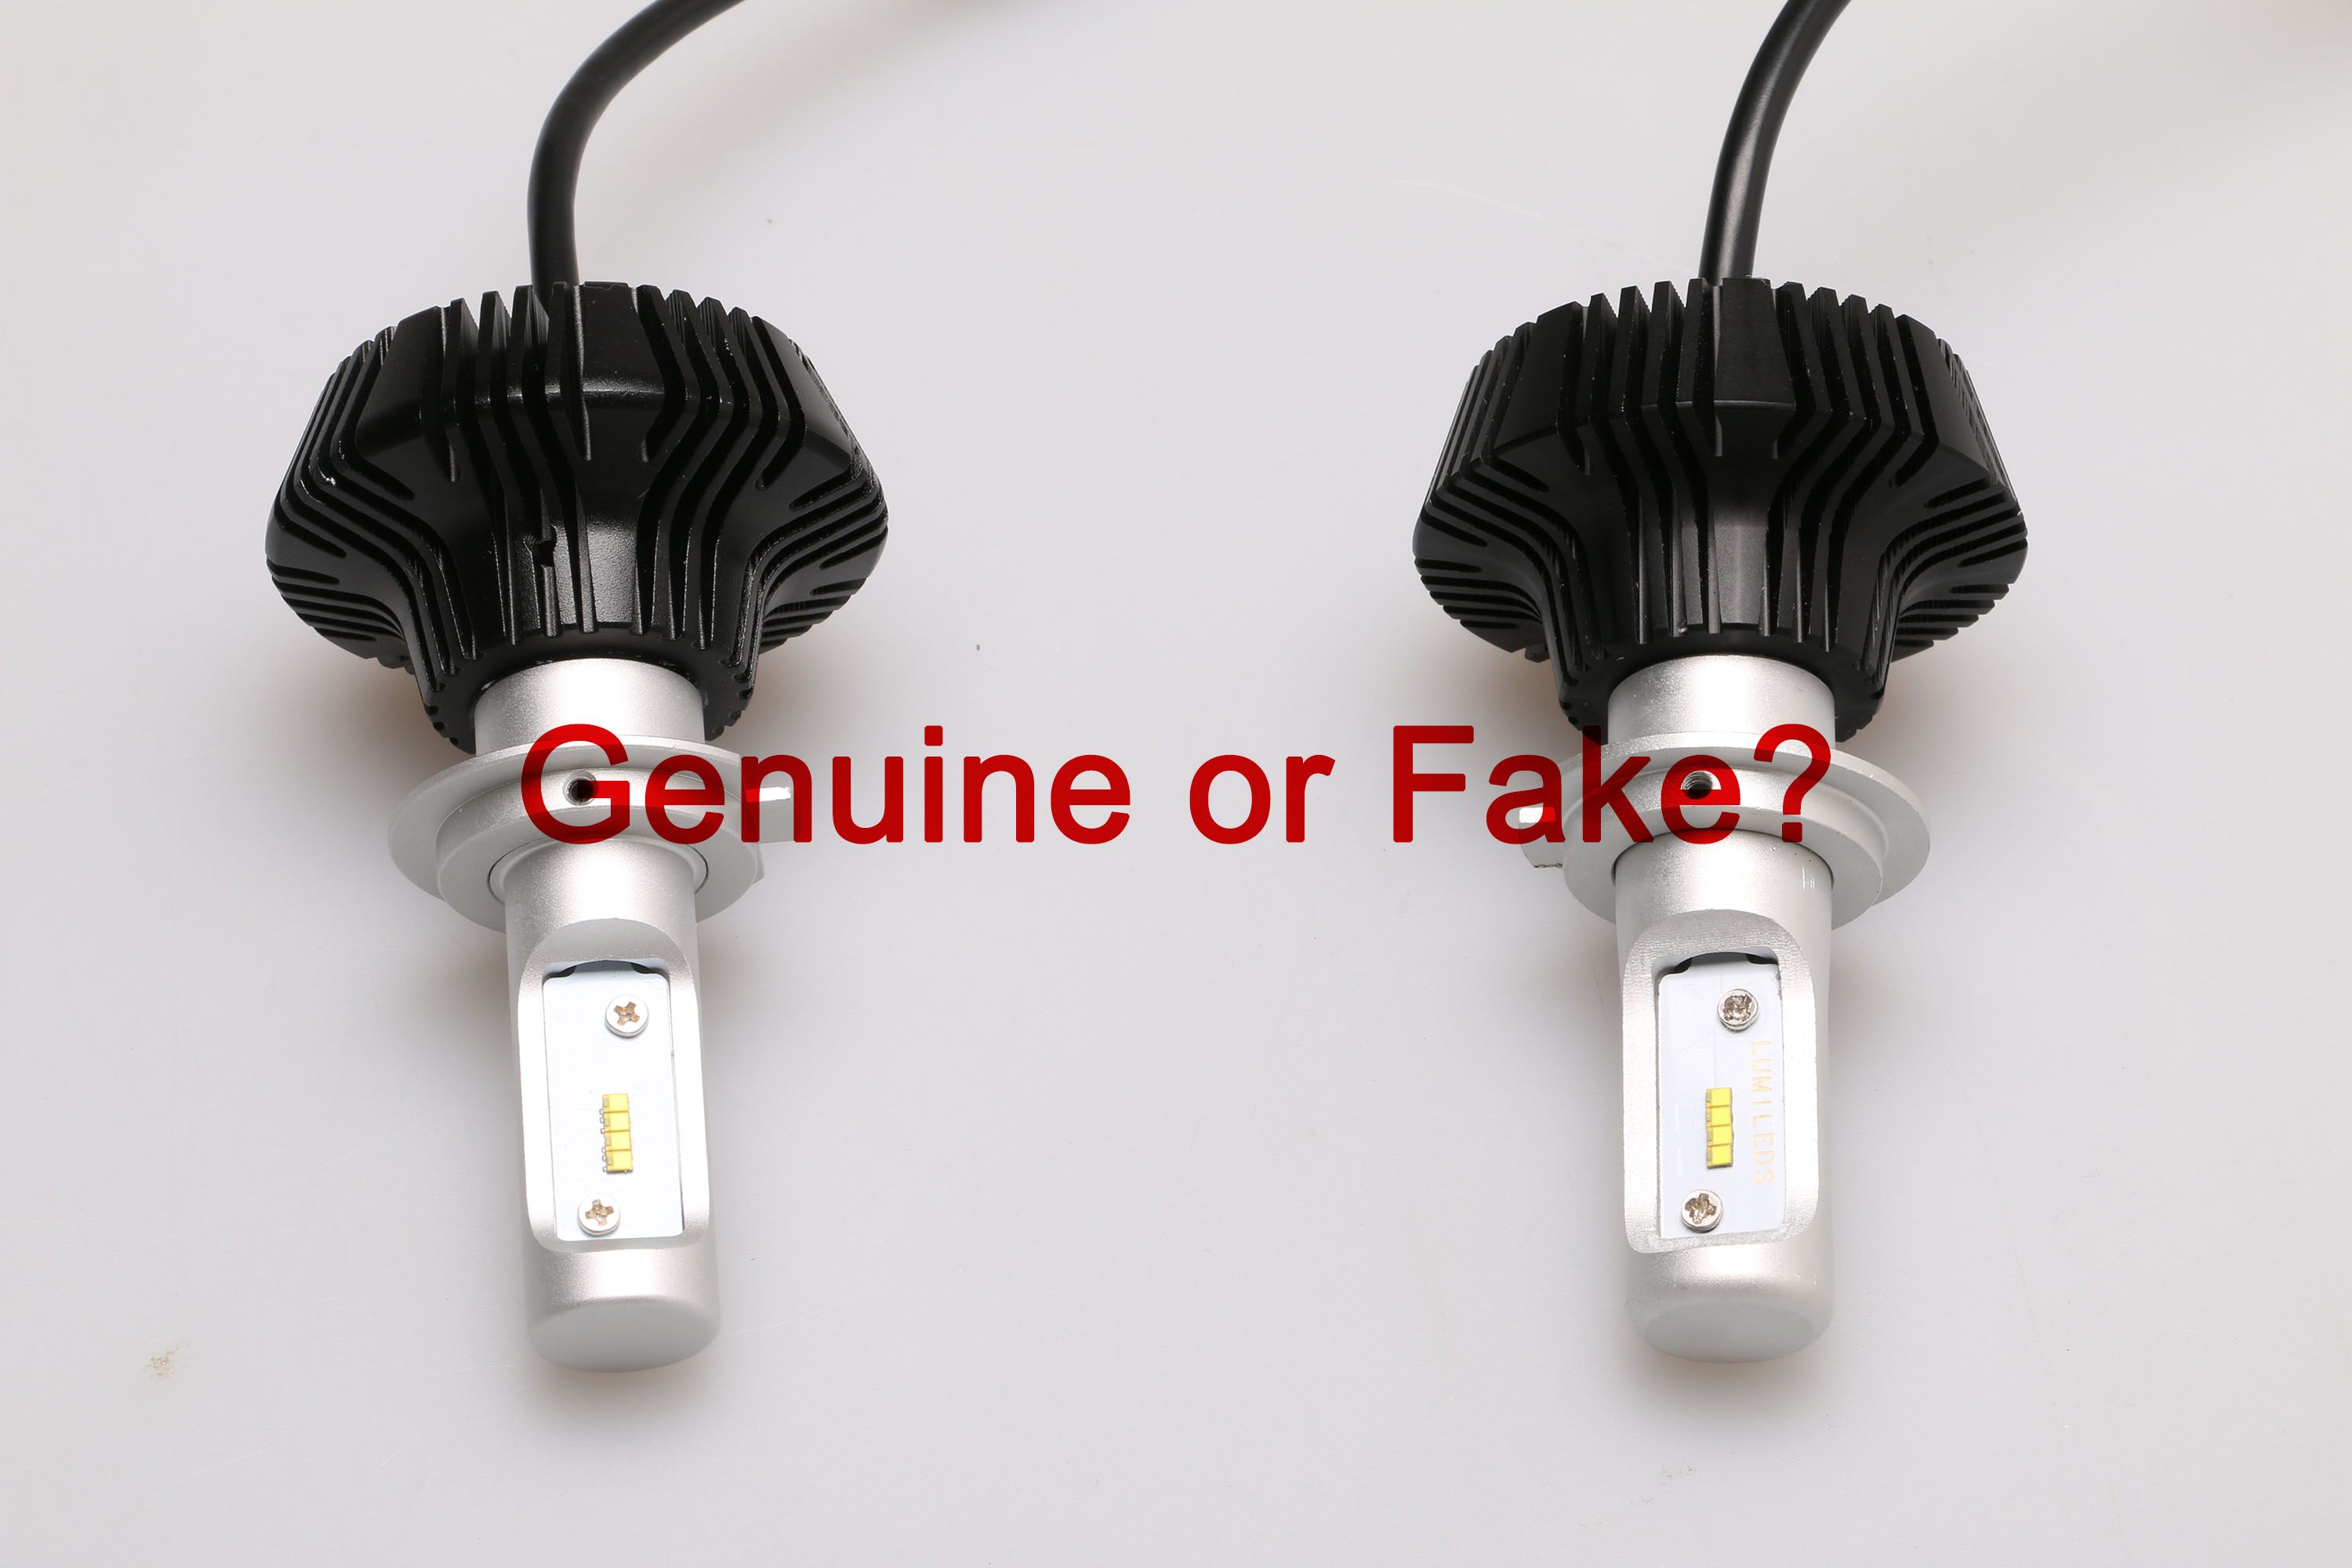 This G7 PHILIPS LED Headlight is Fake